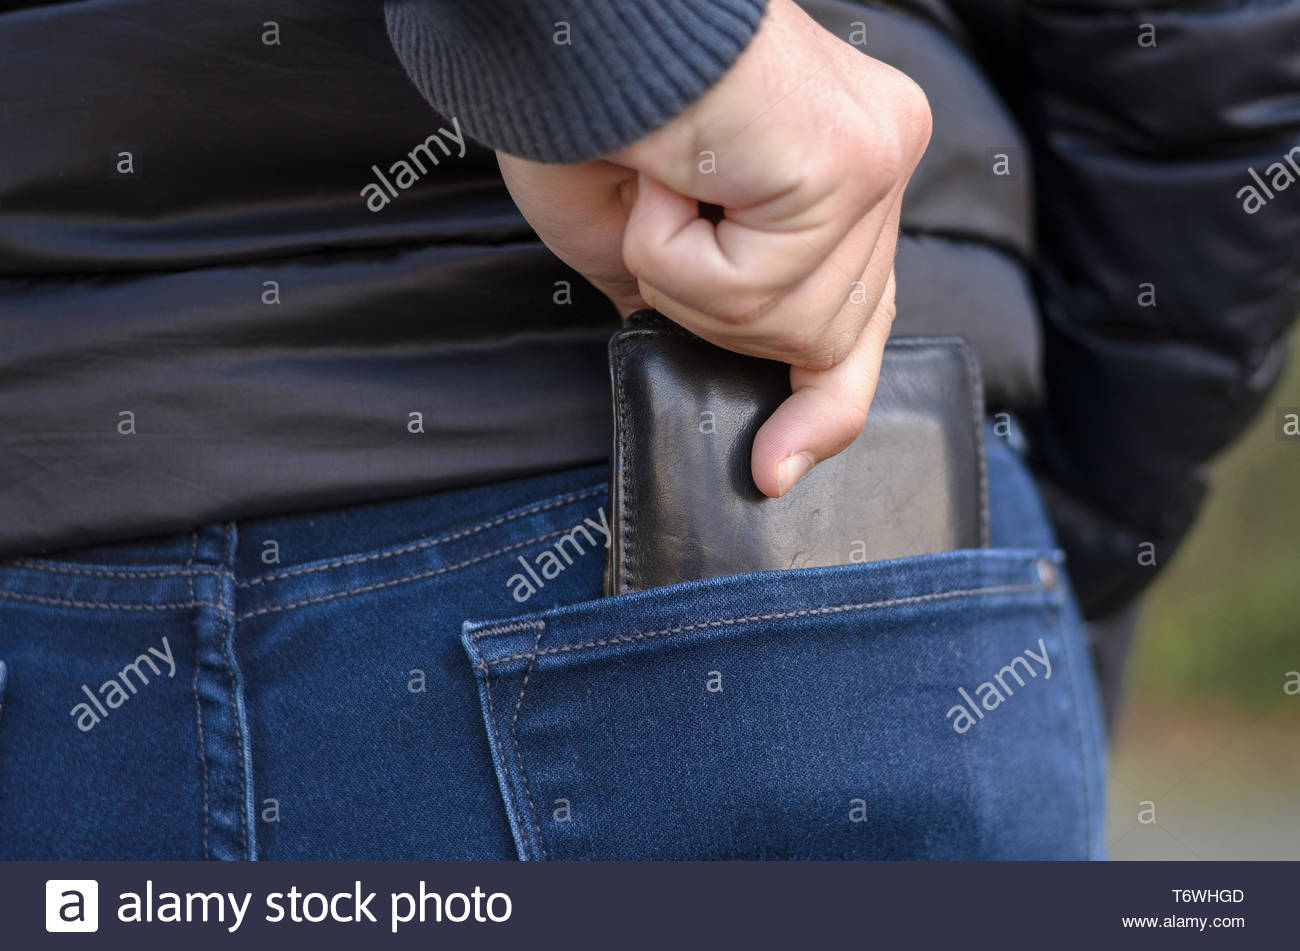 Pickpocket stealing a protruding purse - Stock Image